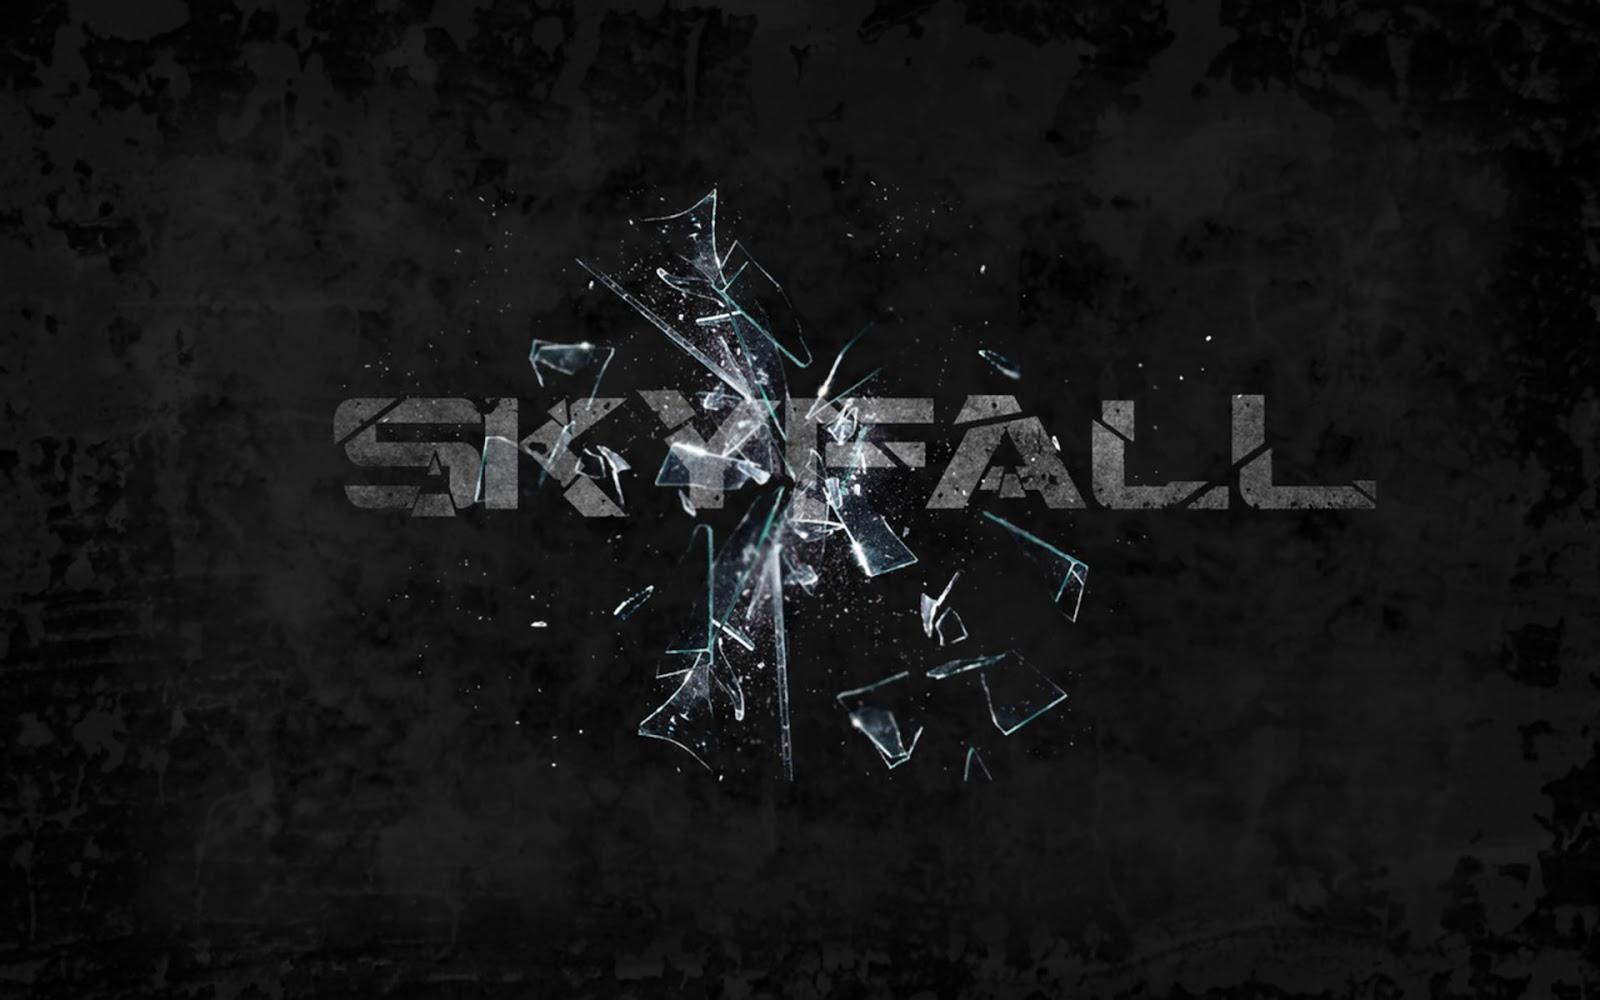 Most Inspiring Wallpaper Movie Iphone 5 - skyfall-movie-hd-wide11  You Should Have_152780.jpg